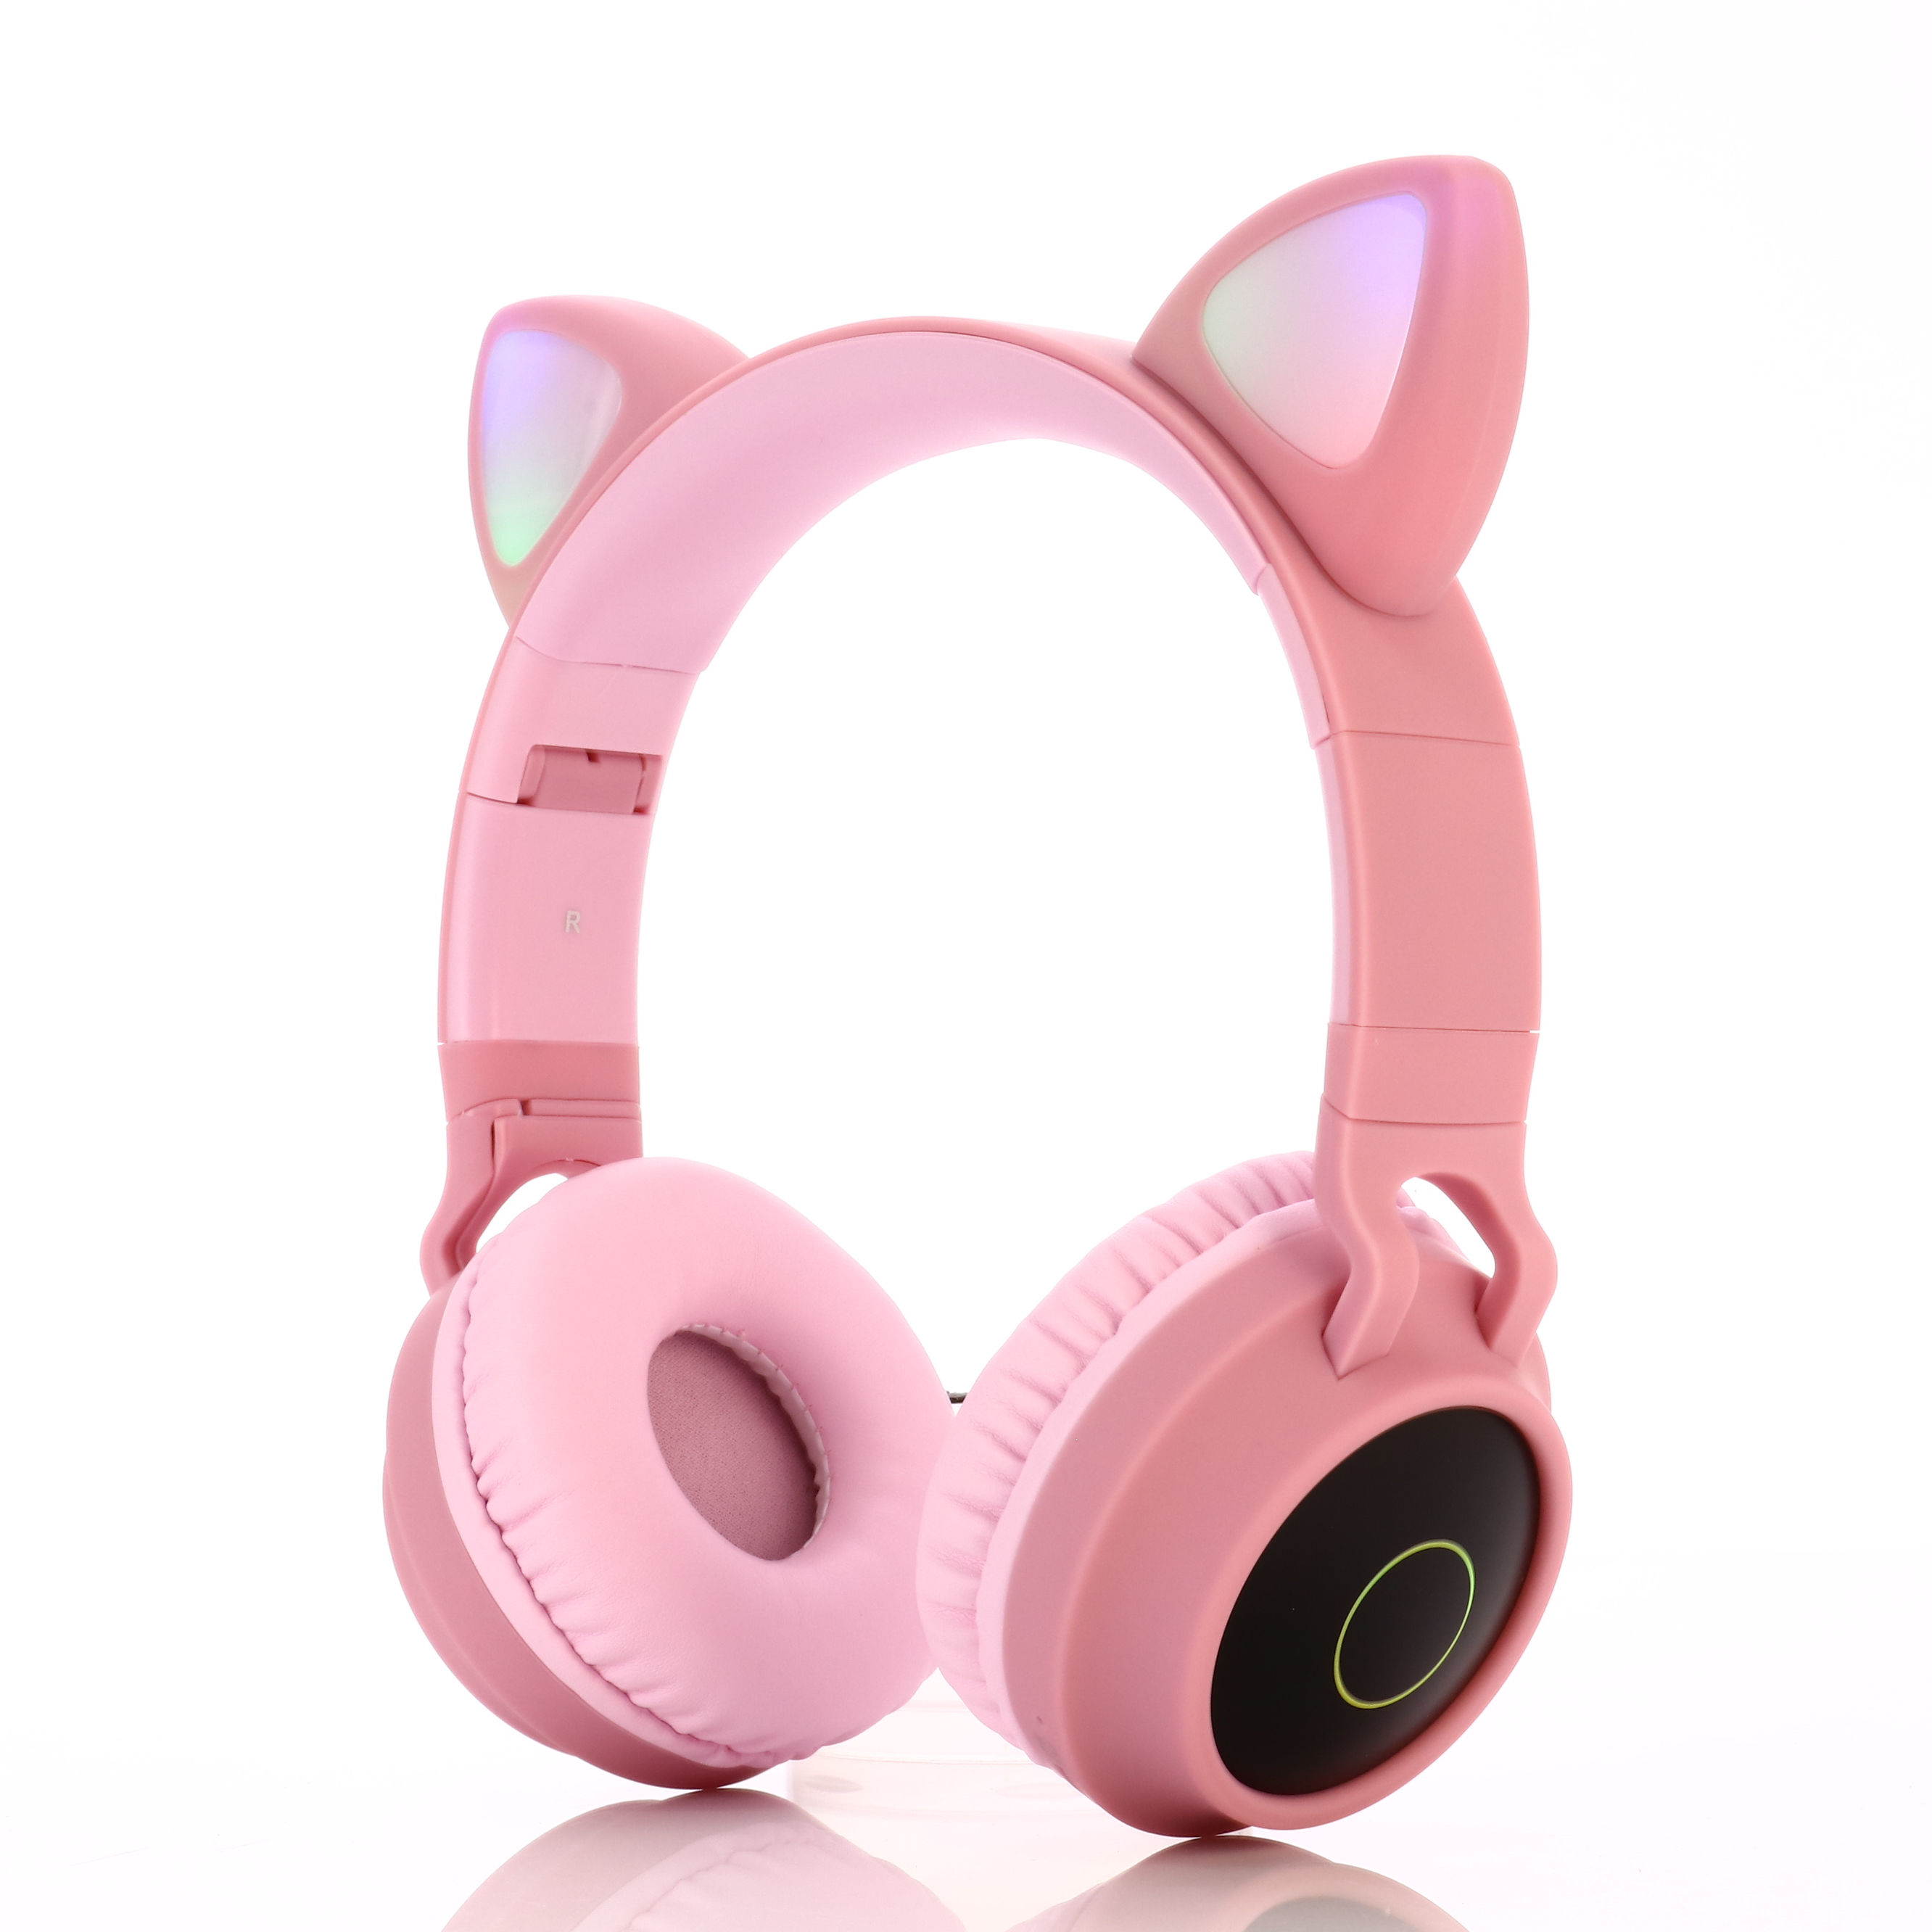 Newest AS-BT028 Cute Cat Ear Wireless Headphone Blue-tooth 5.0 With Microphone And LED Light Headset Cute Cat Headphones For Gir